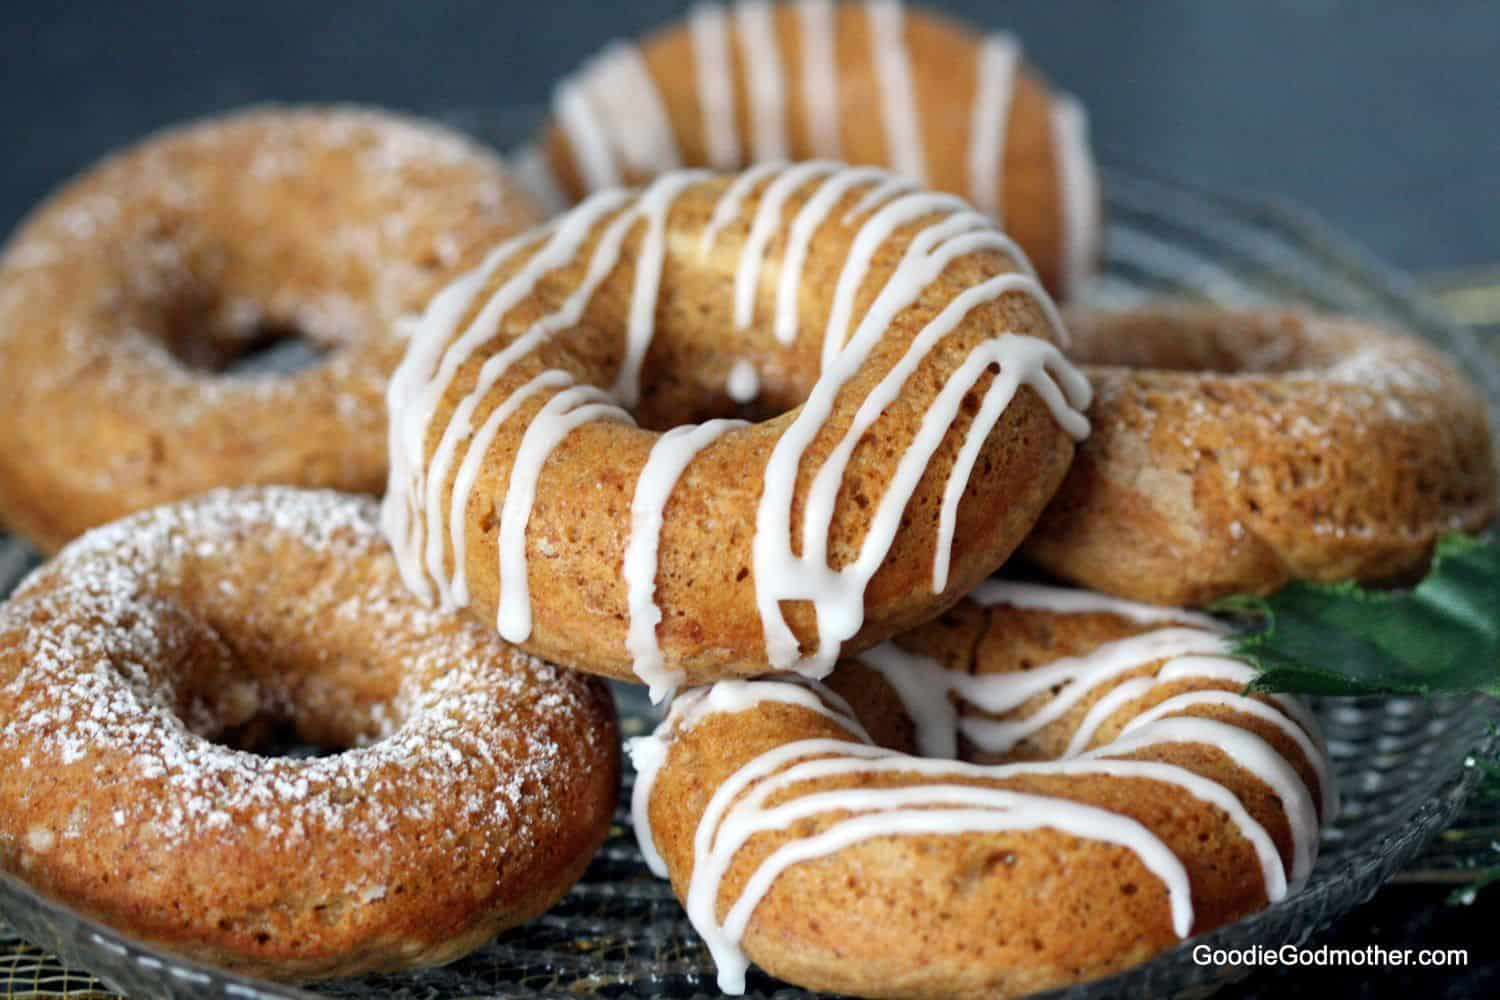 Gingerbread Baked Doughnuts - Goodie Godmother